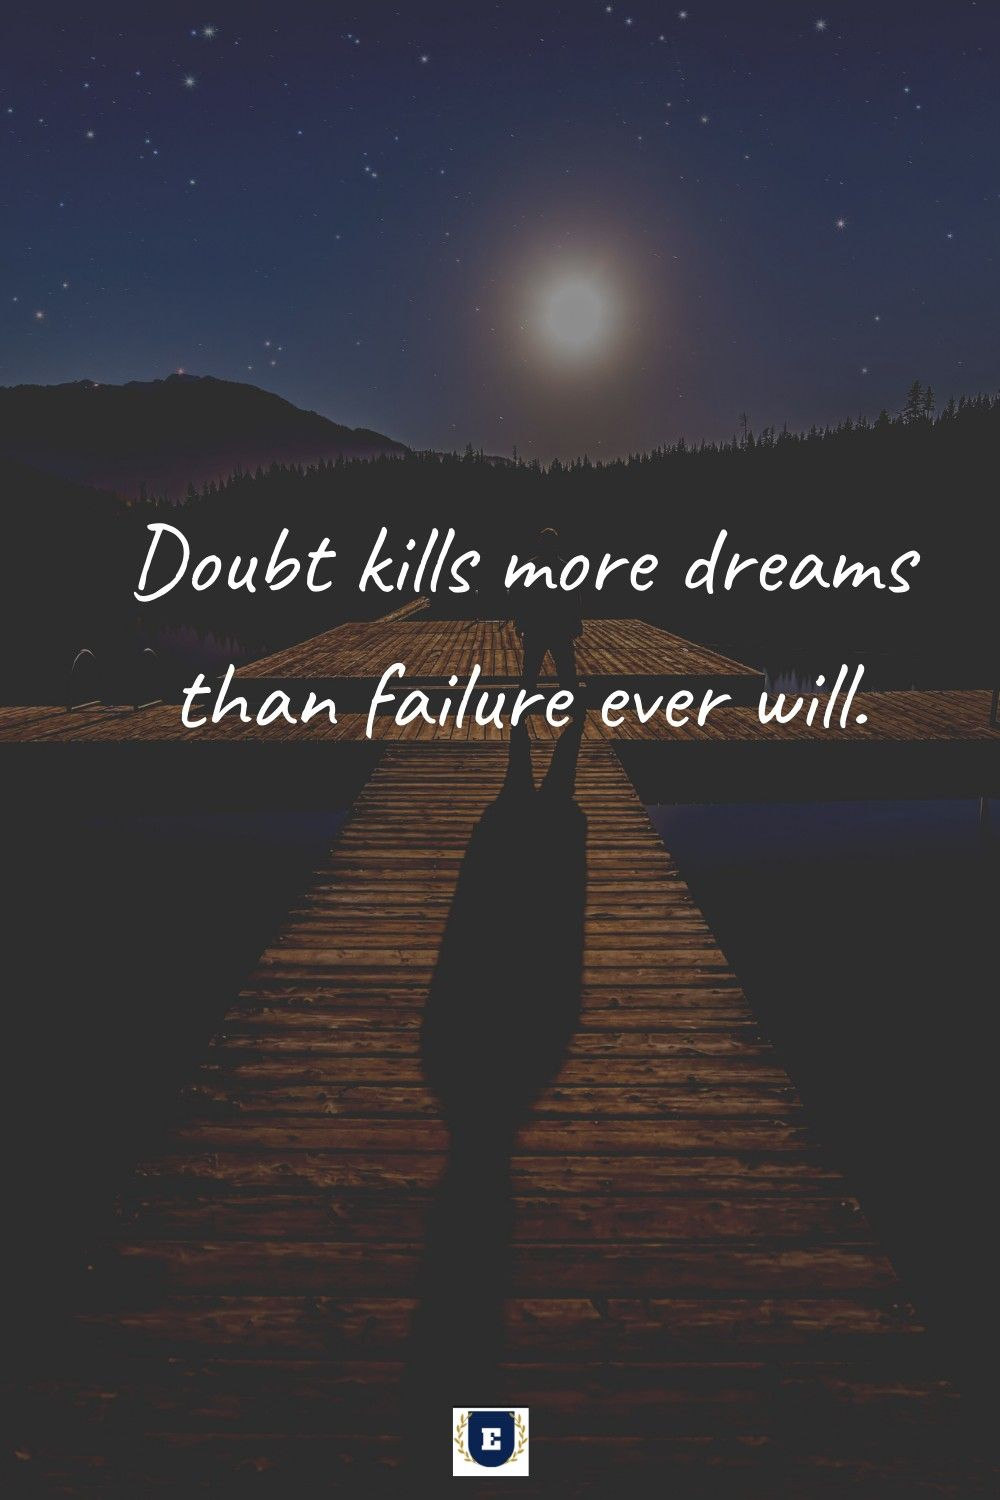 #motivation #inspirational #dreams #nevergiveup #quotes #edeocy